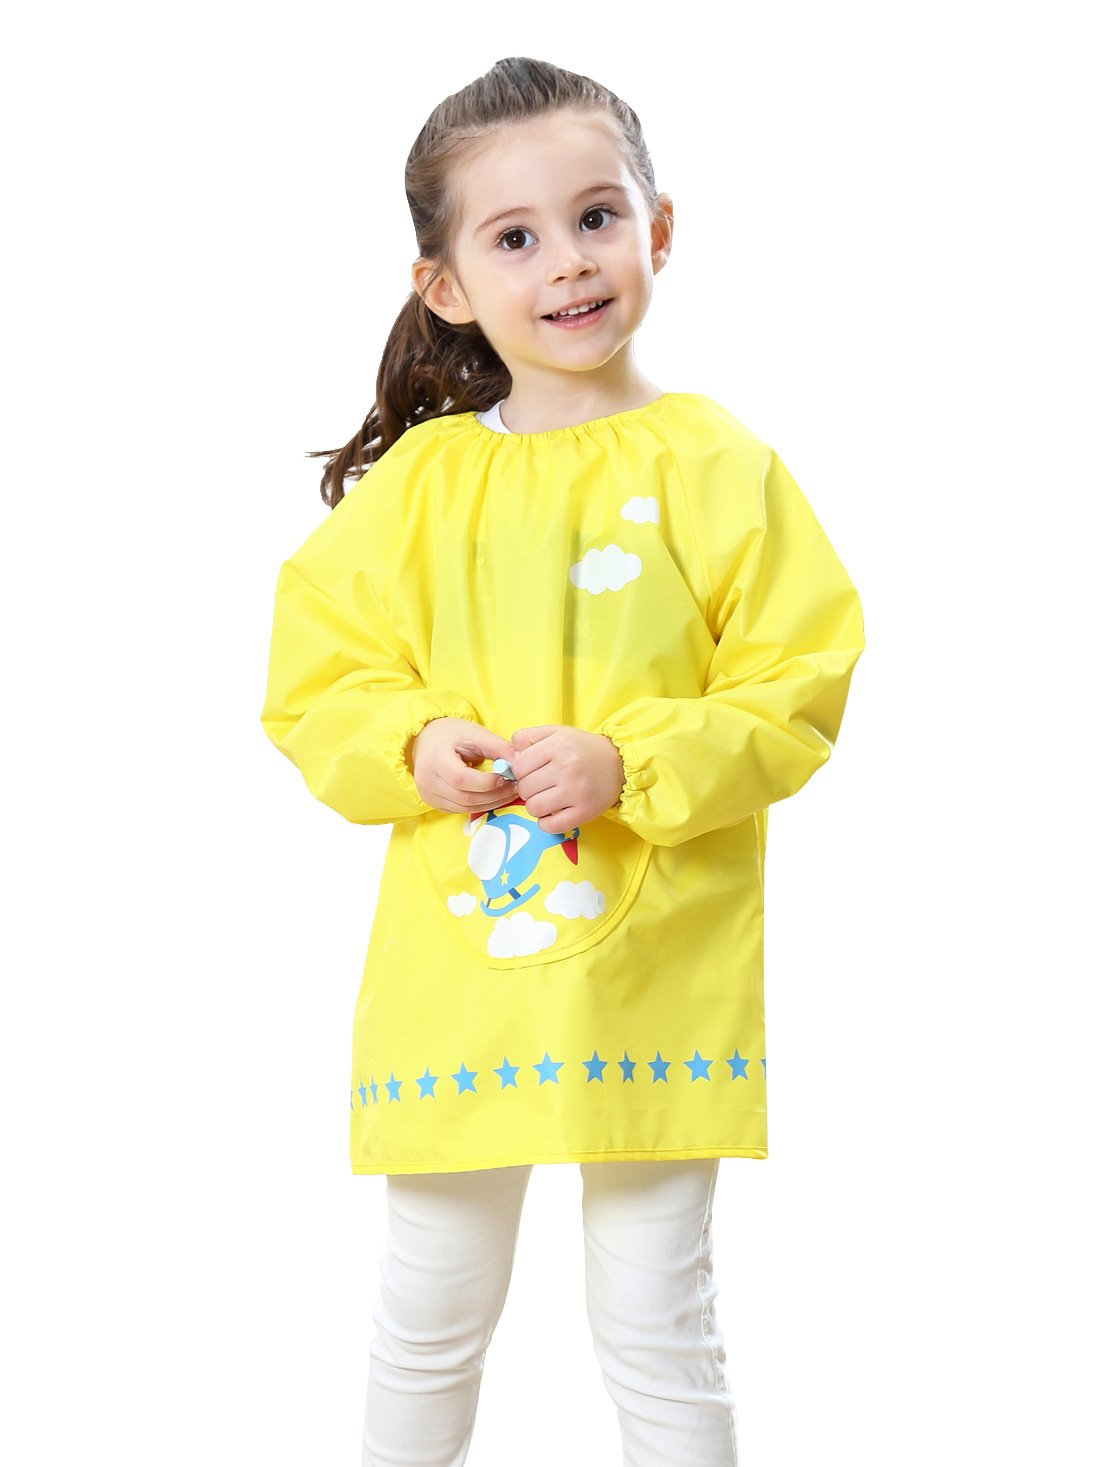 Kids Multifunctional Painting Smock Cute Plane Printing Children's Waterproof Pullover Long Sleeve Bib with Pocket Drawing Apron Yellow 4-6 T DAWNTUNG